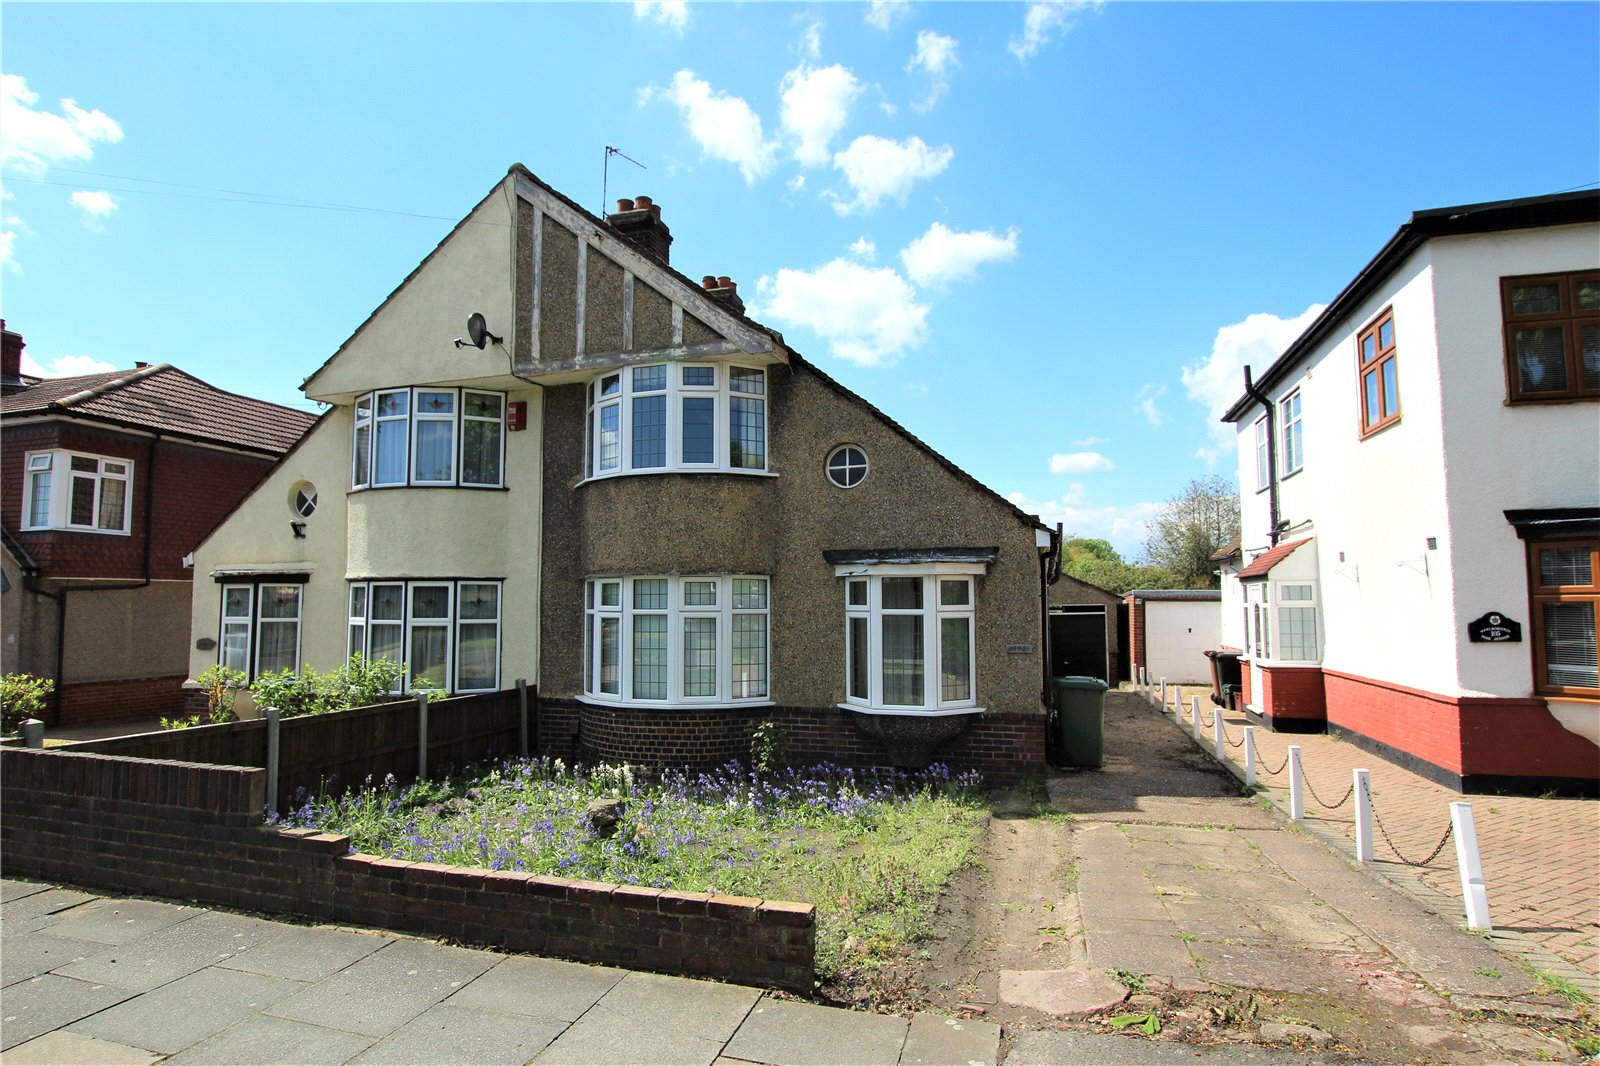 Marlborough Park Avenue, Sidcup, Kent, DA15